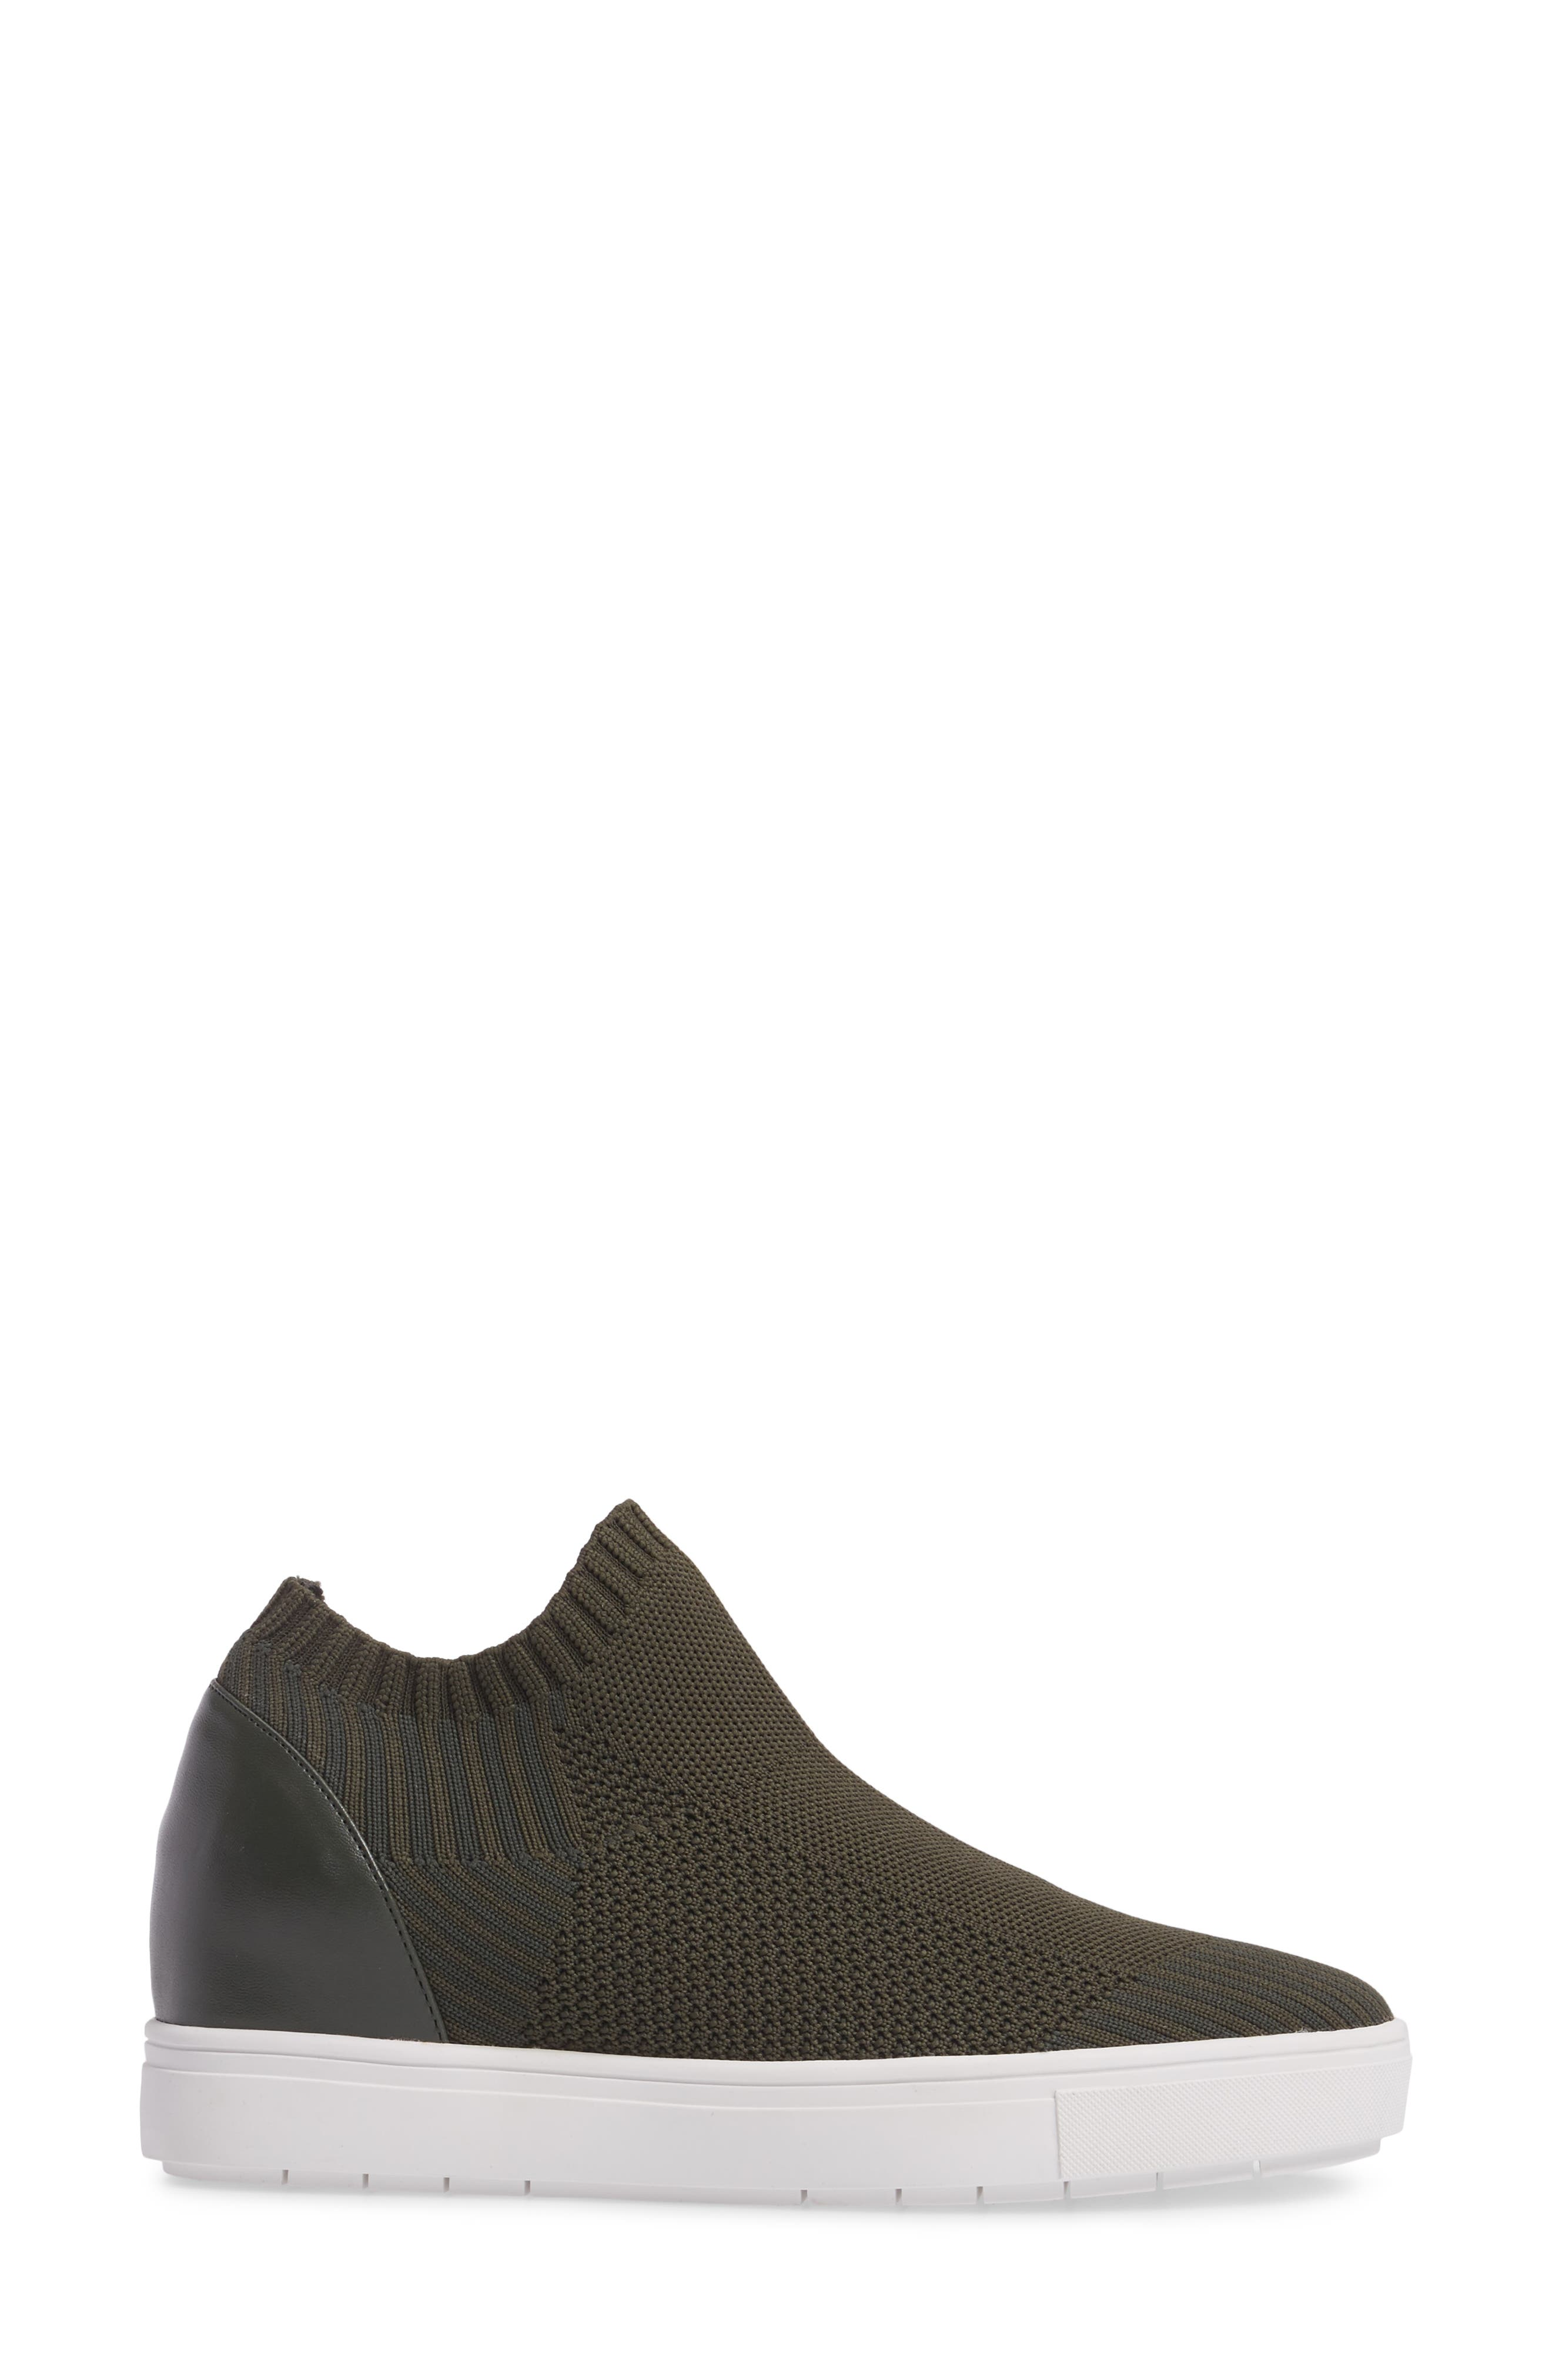 Sly Hidden Wedge Knit Sneaker,                             Alternate thumbnail 3, color,                             Olive Fabric